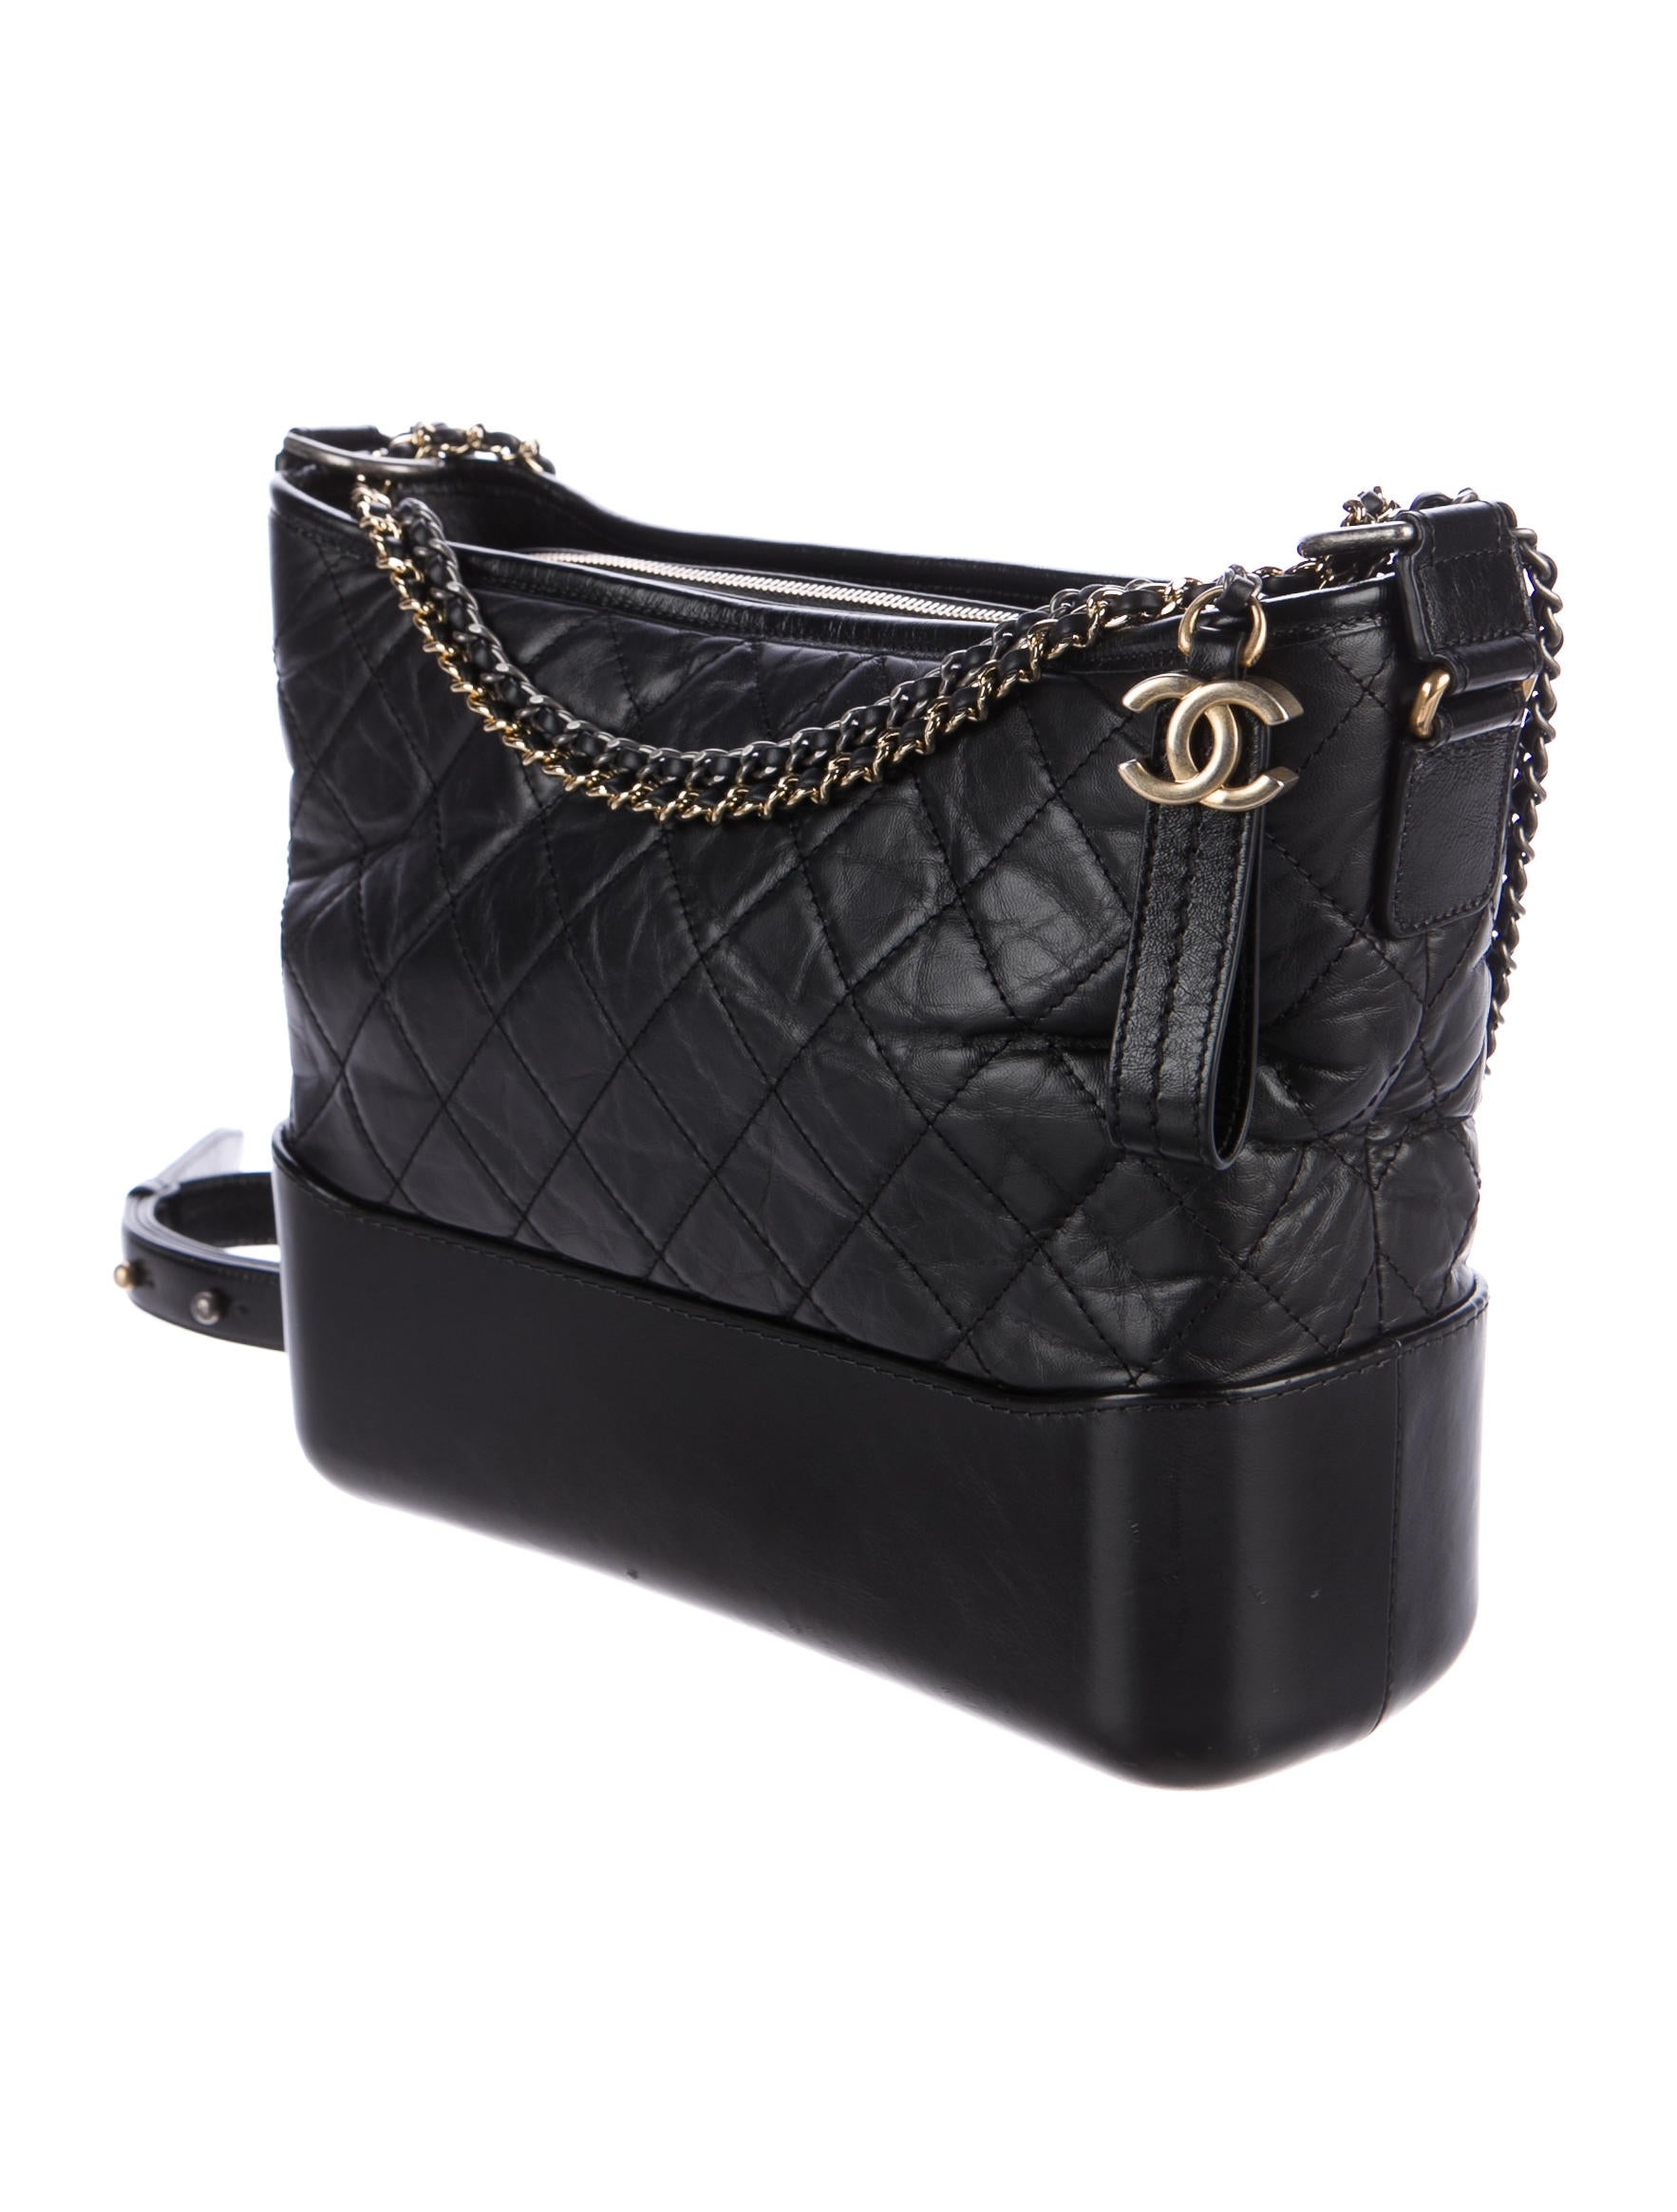 77fc36c7649a08 Chanel Gabrielle Bag Medium รีวิว | Stanford Center for Opportunity ...